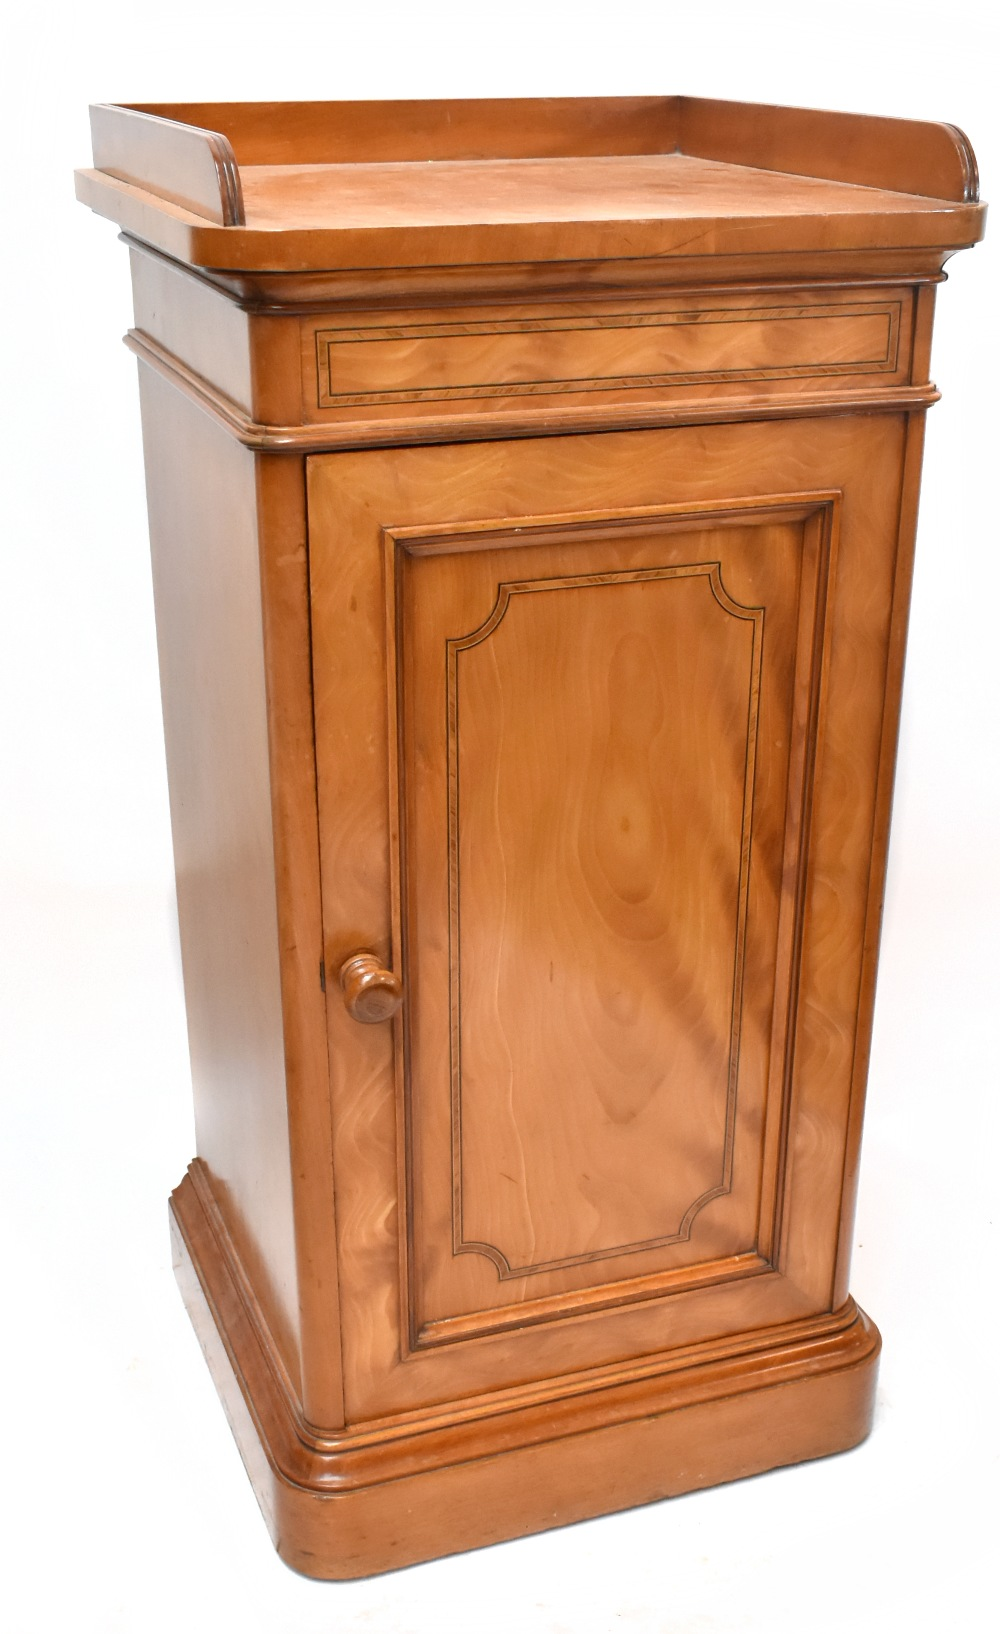 GILLOWS; a Victorian satin walnut and inlaid bedside cabinet with three-quarter raised gallery above